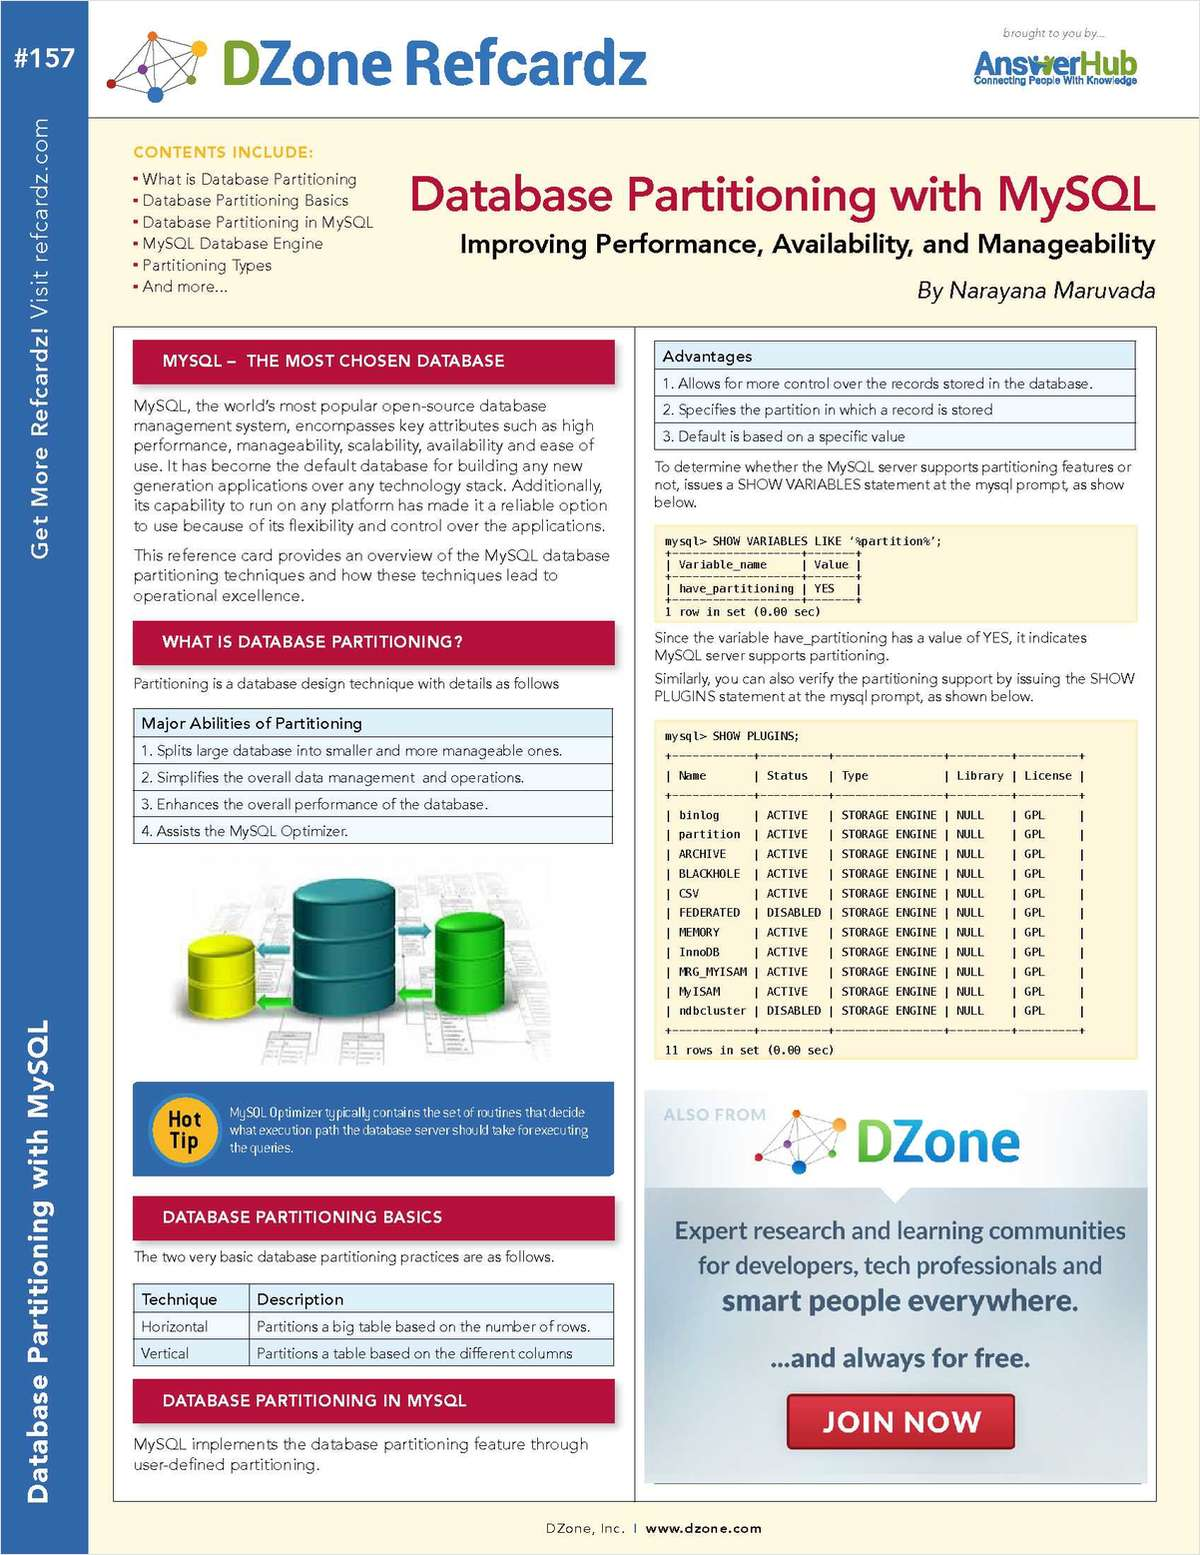 Database Partitioning with MySQL: Improving Performance, Availability, and Manageability